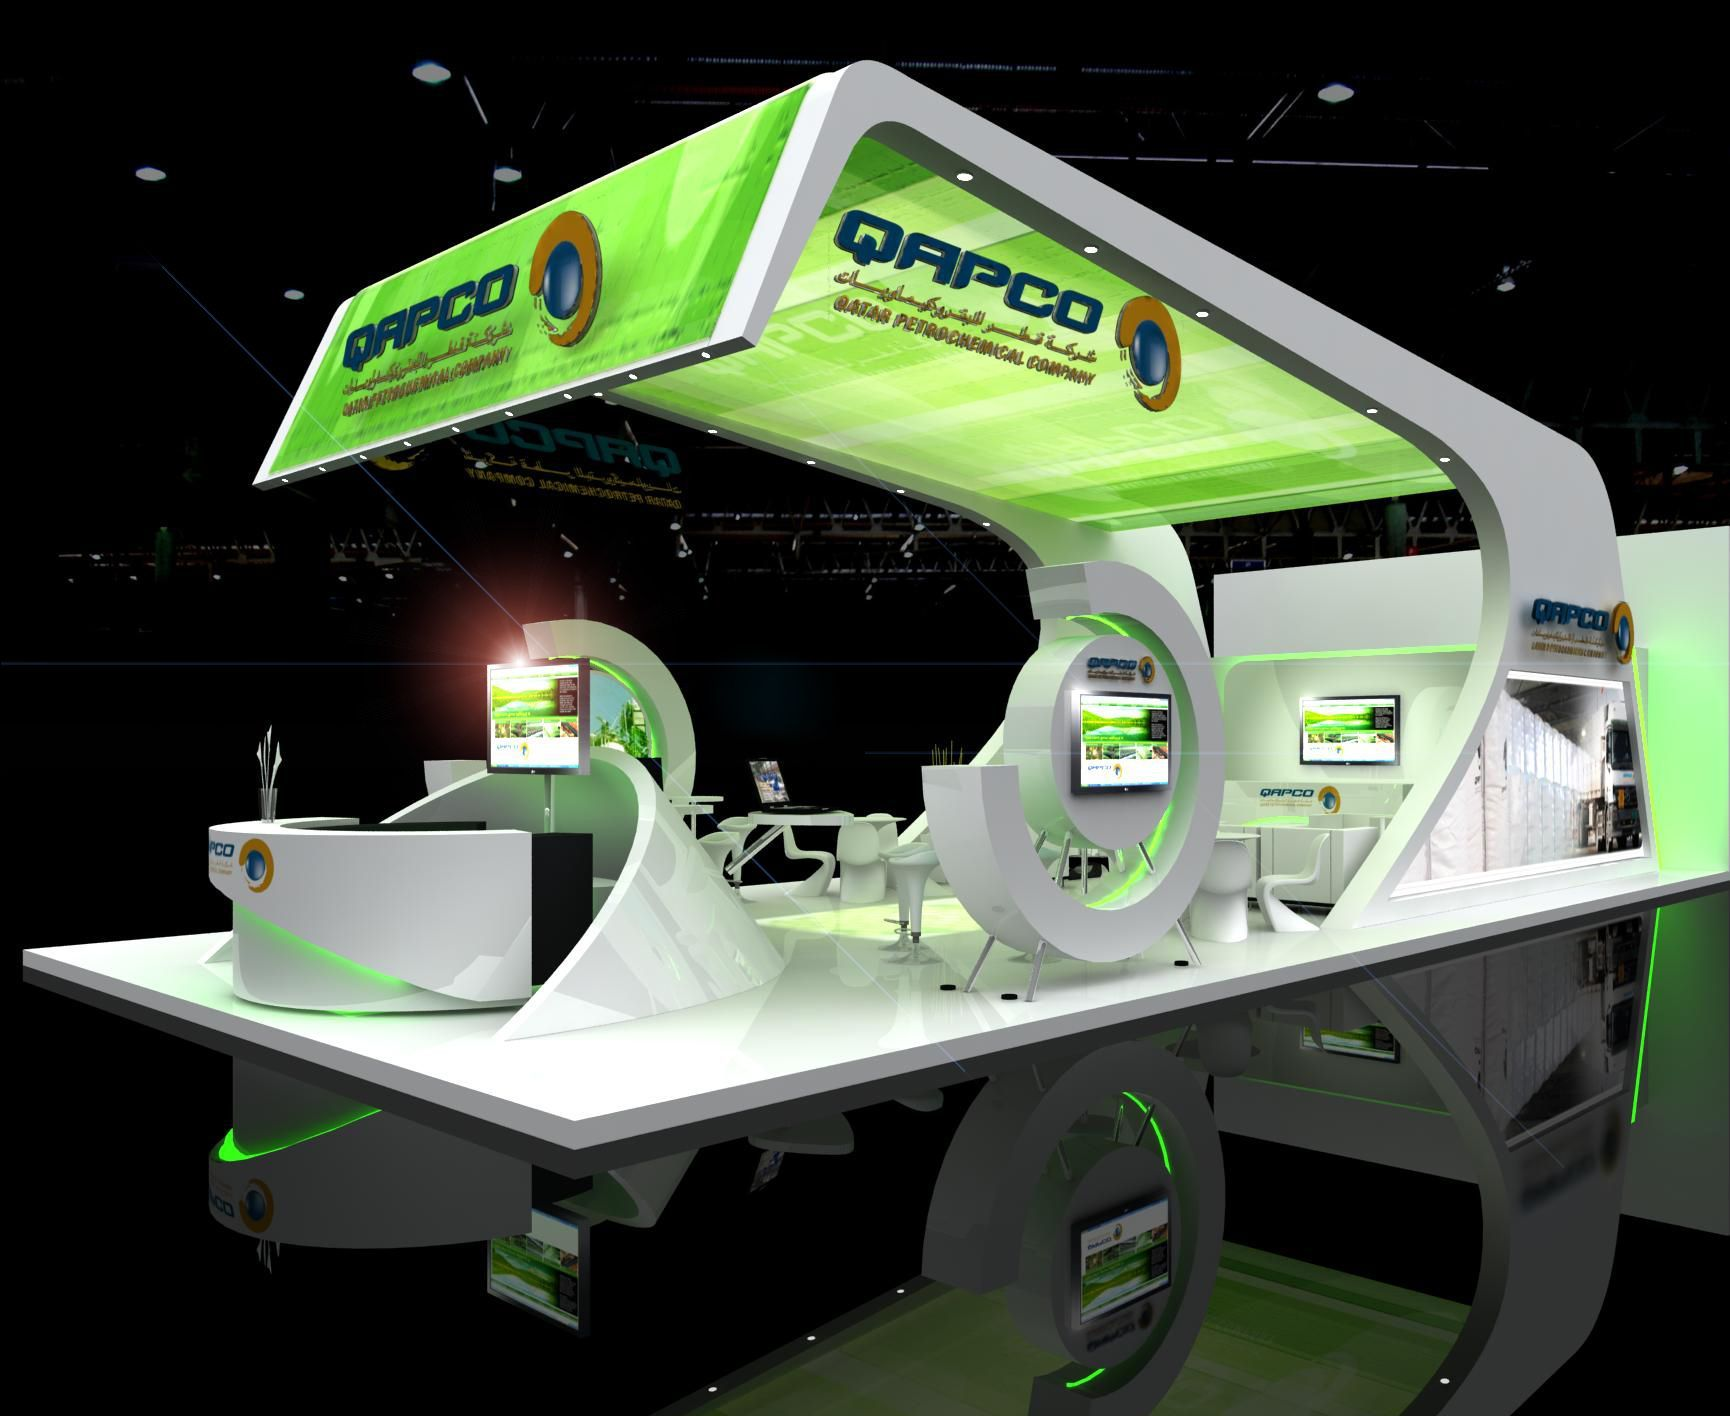 Photography Expo Stands : Photo of stands i cad design barcelona